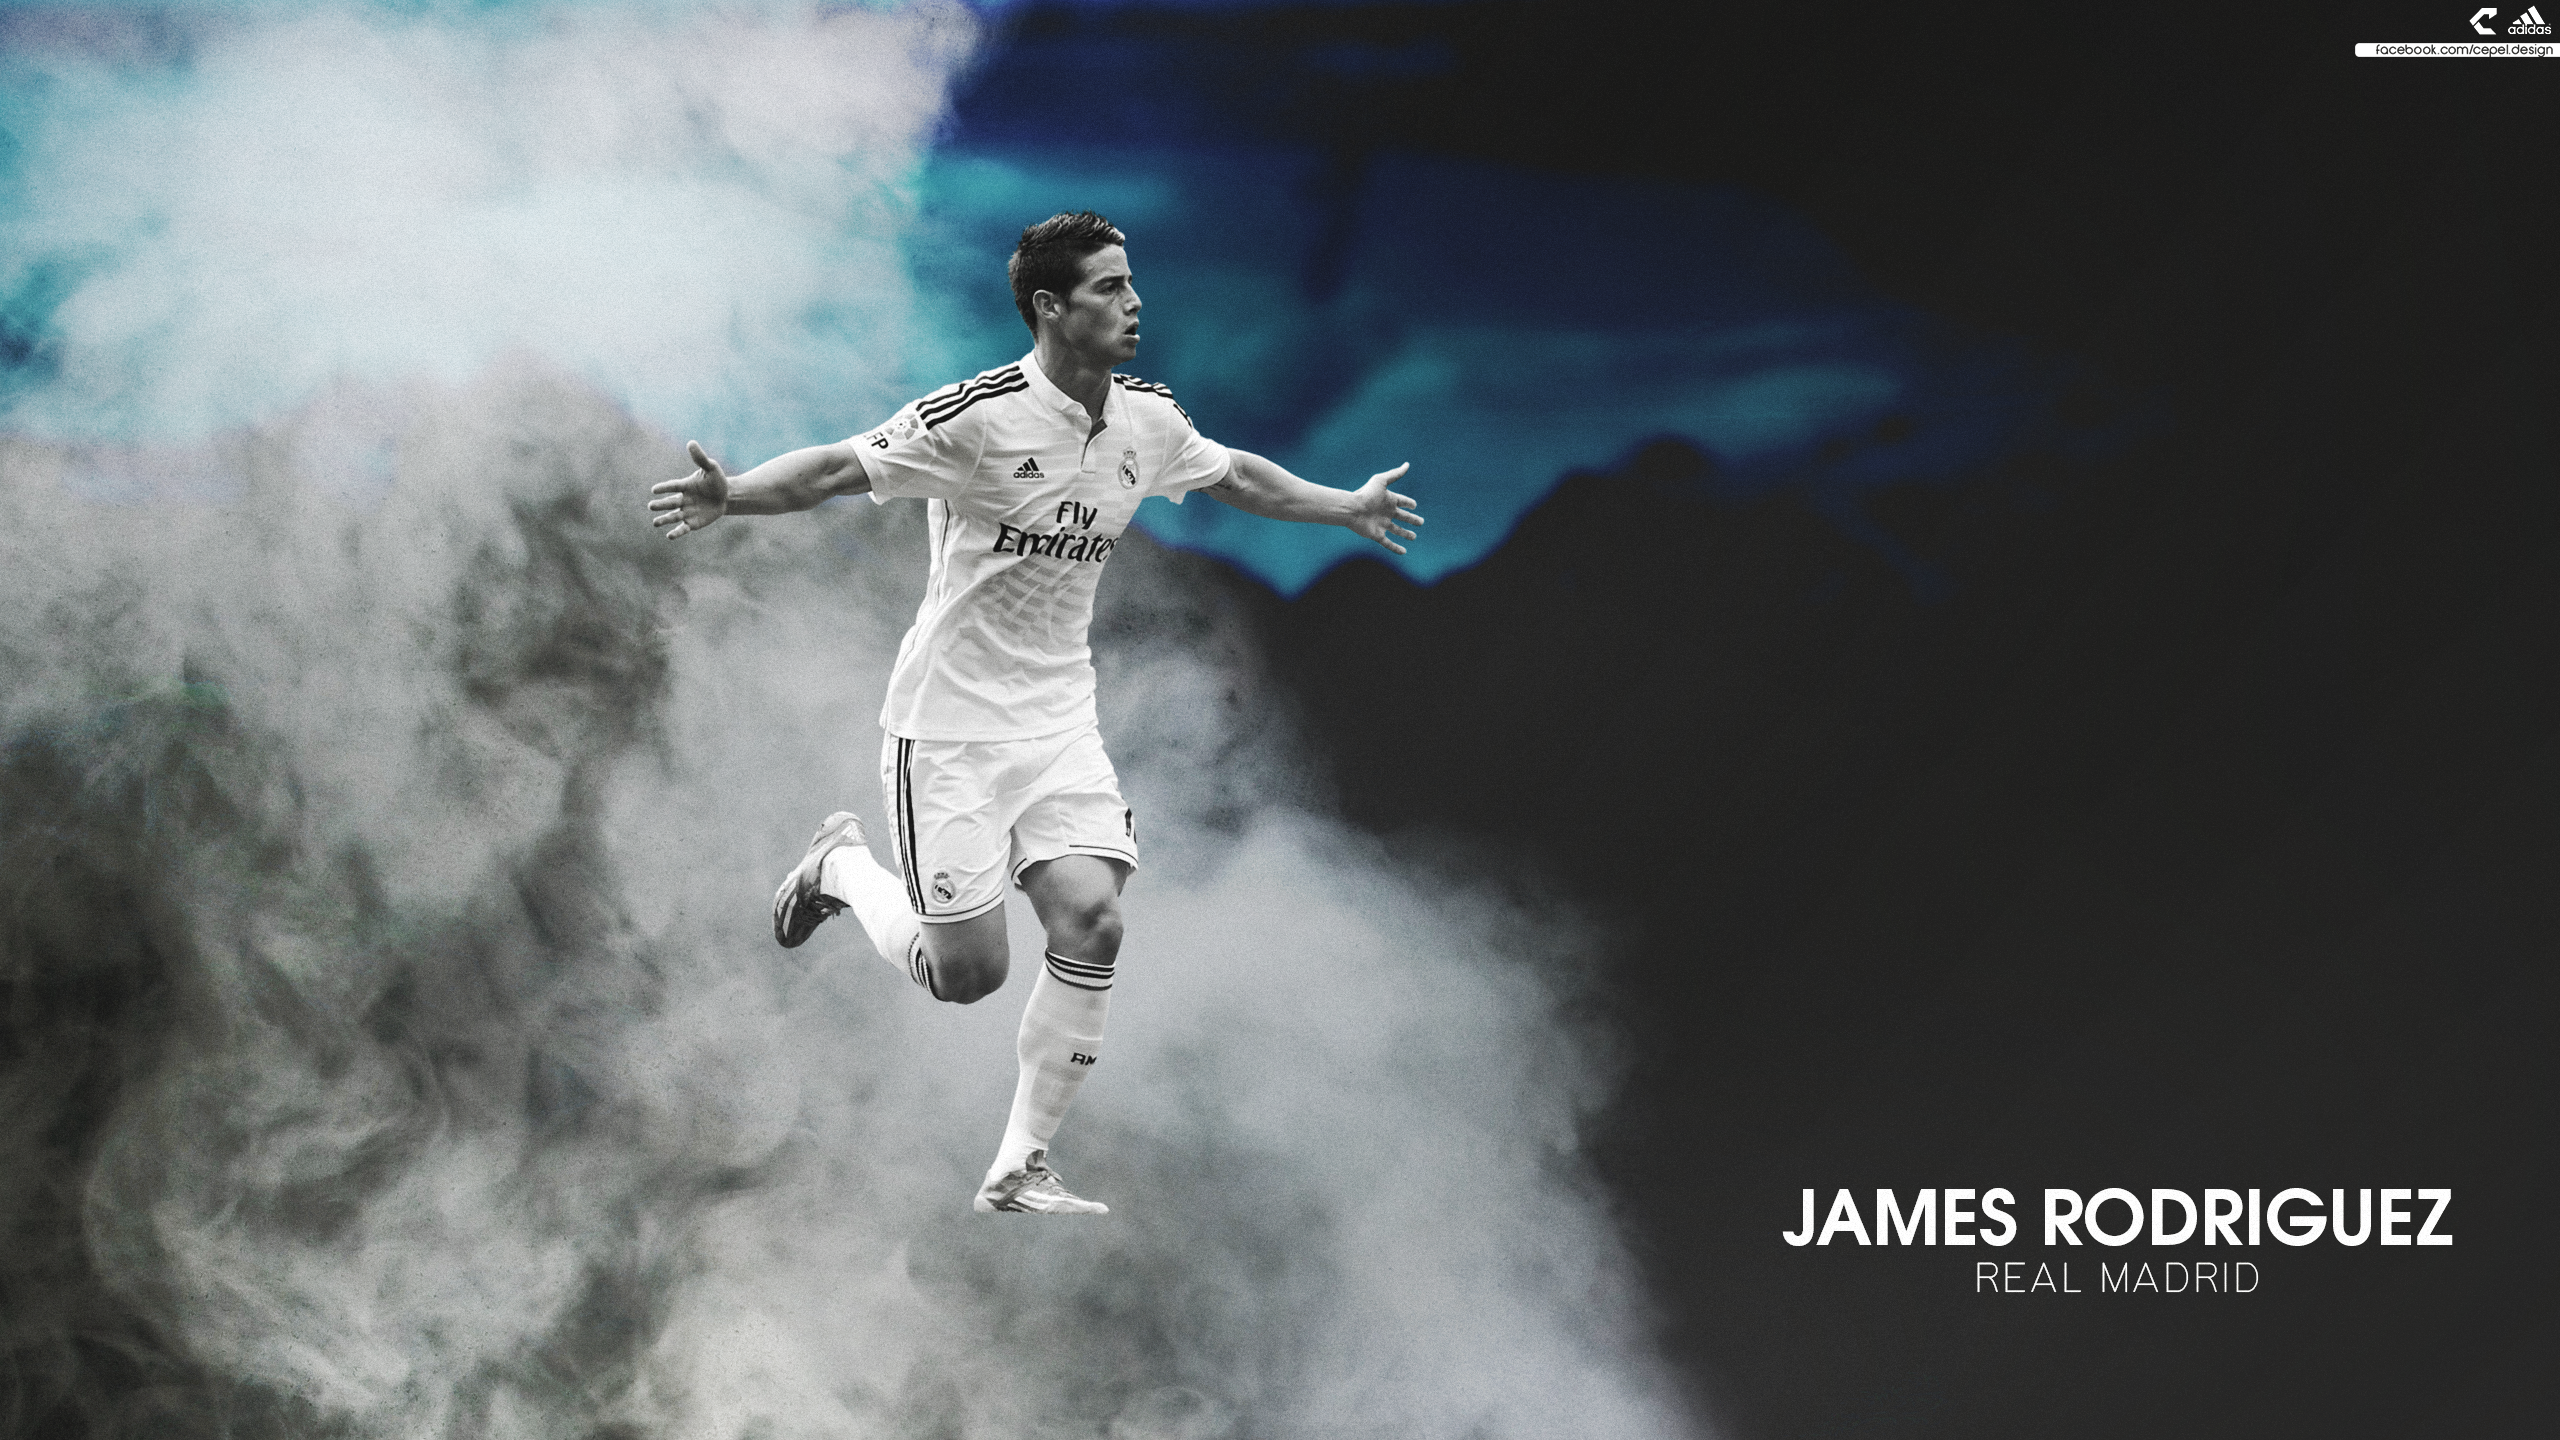 Images Of James Rodriguez Iphone Wallpaper Industrious Info